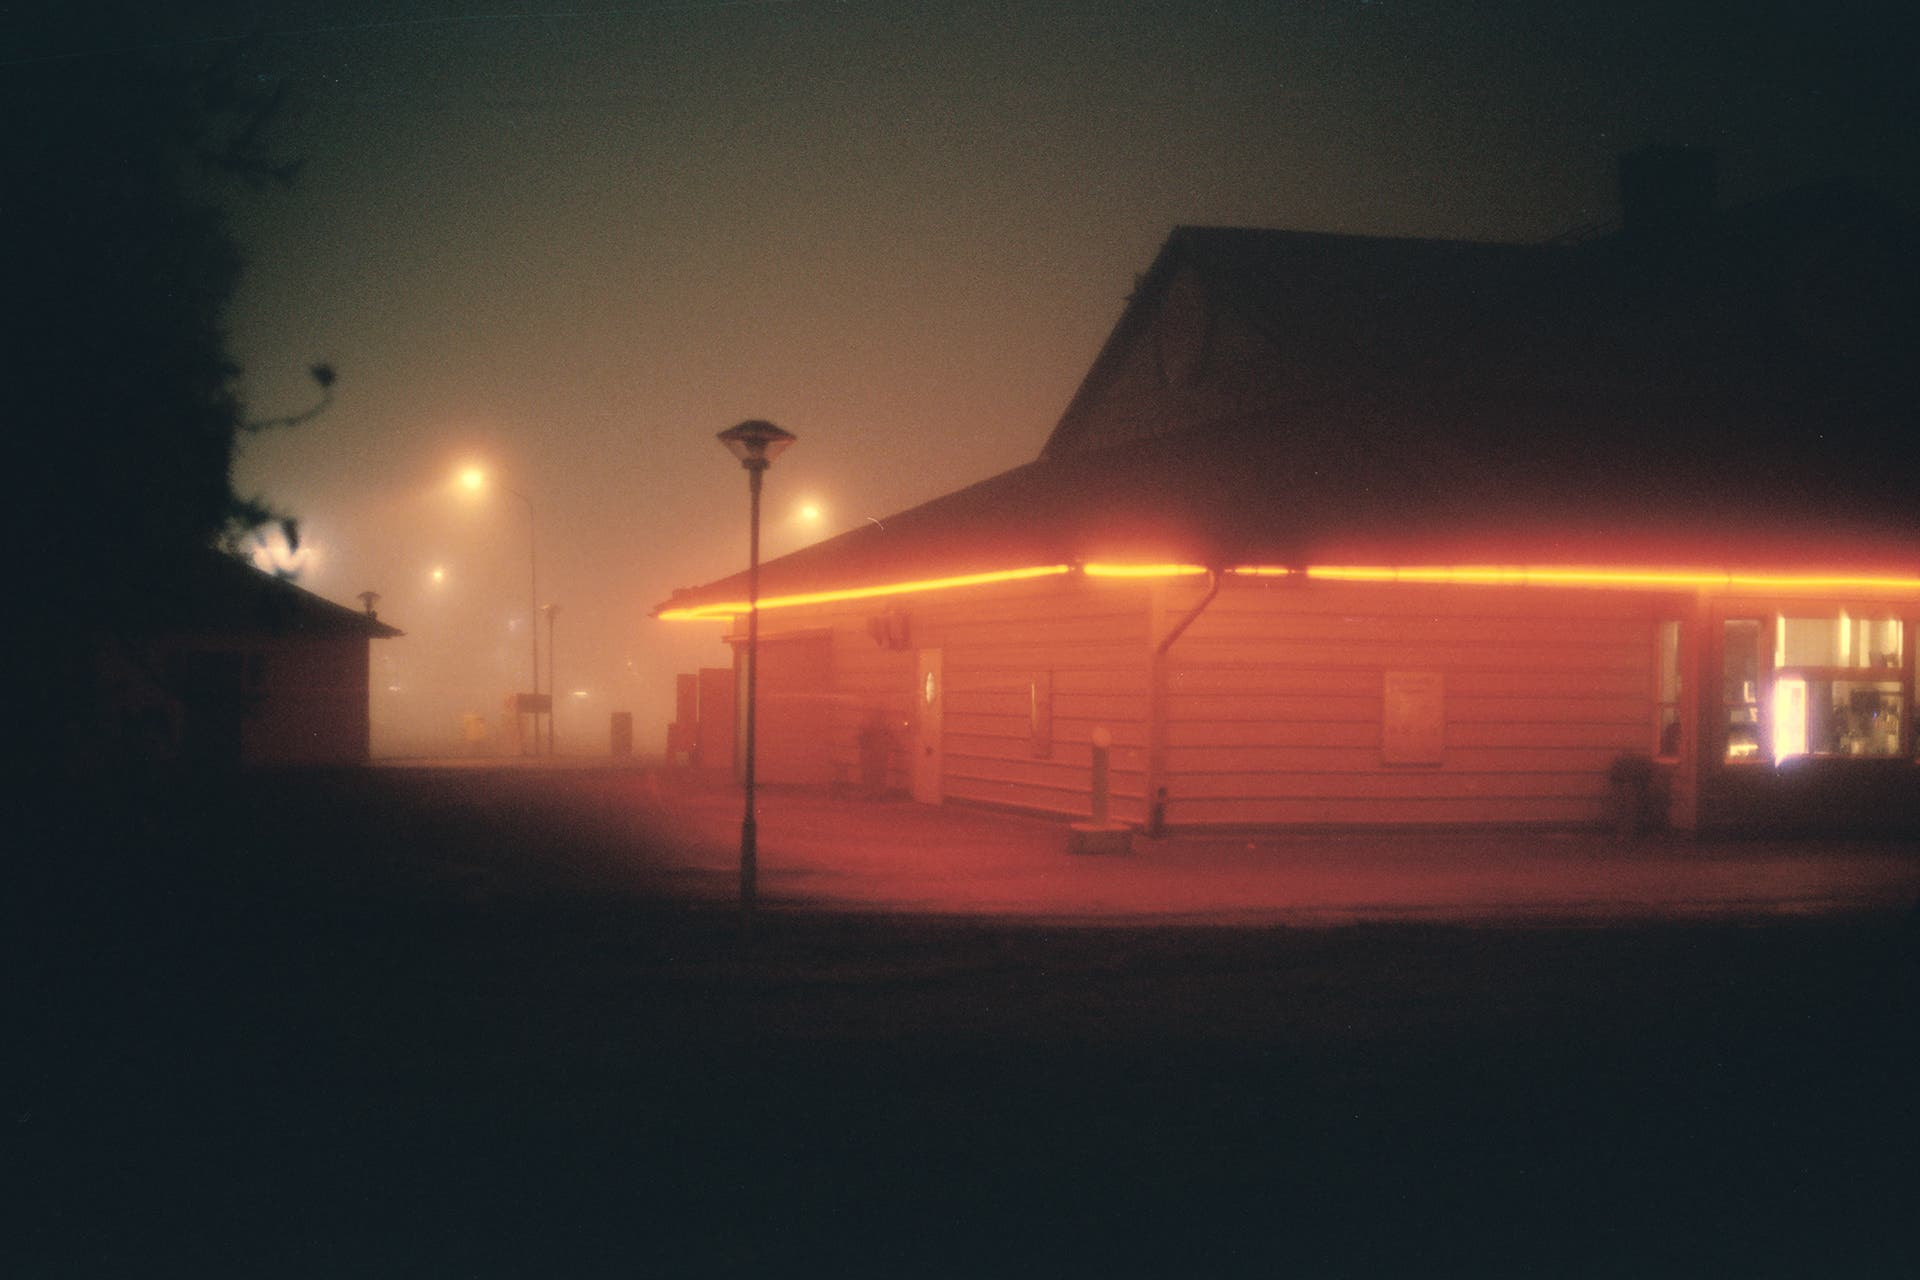 Get Lost in the Atmospheric Nightscapes of Simon Åslund